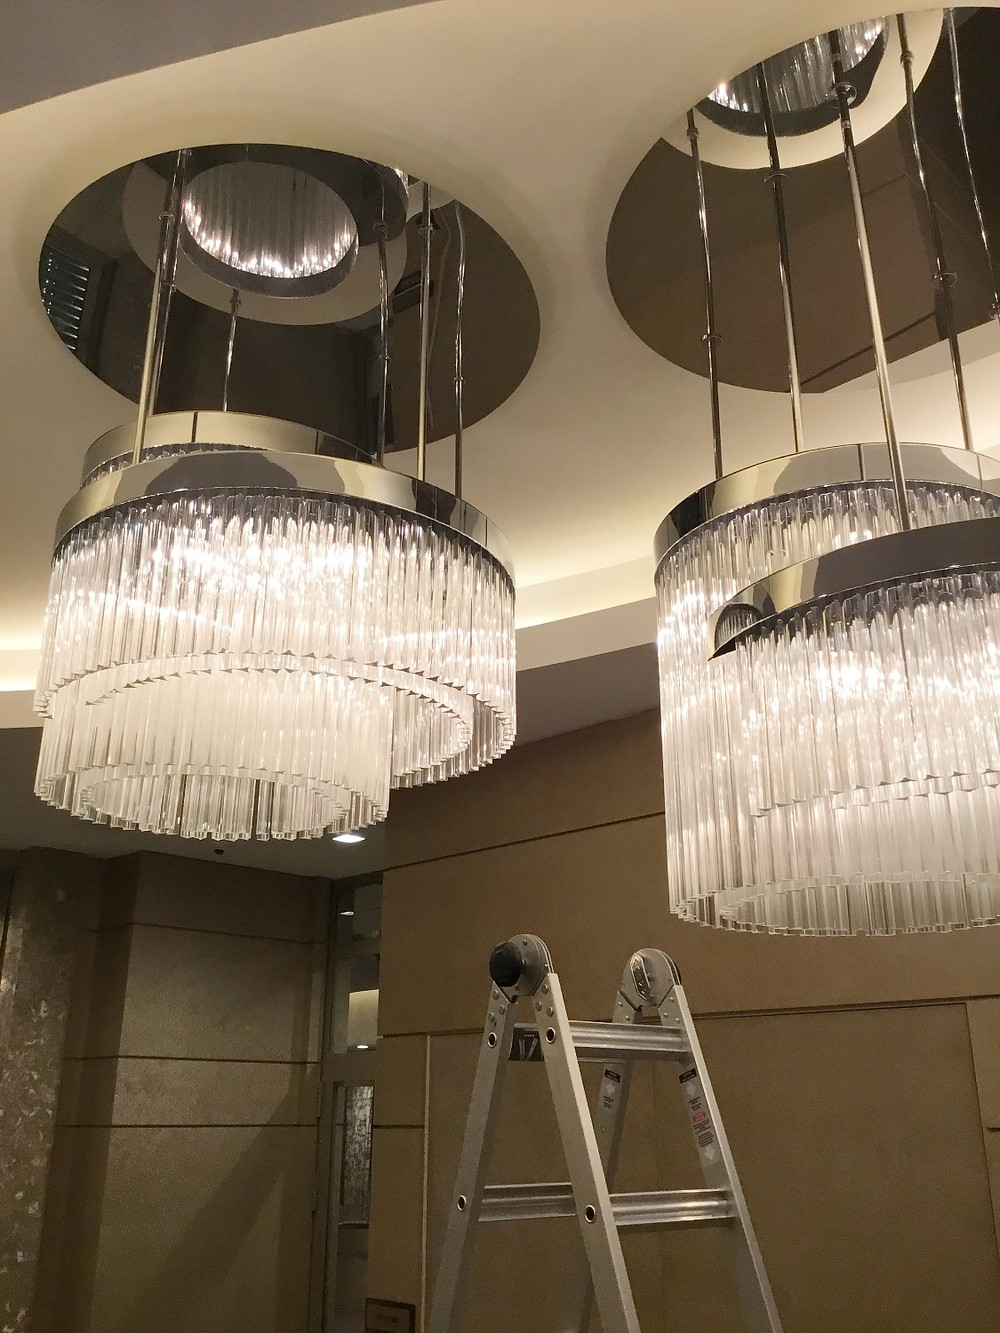 Cleaning lighting fixtures of the Main Entrance